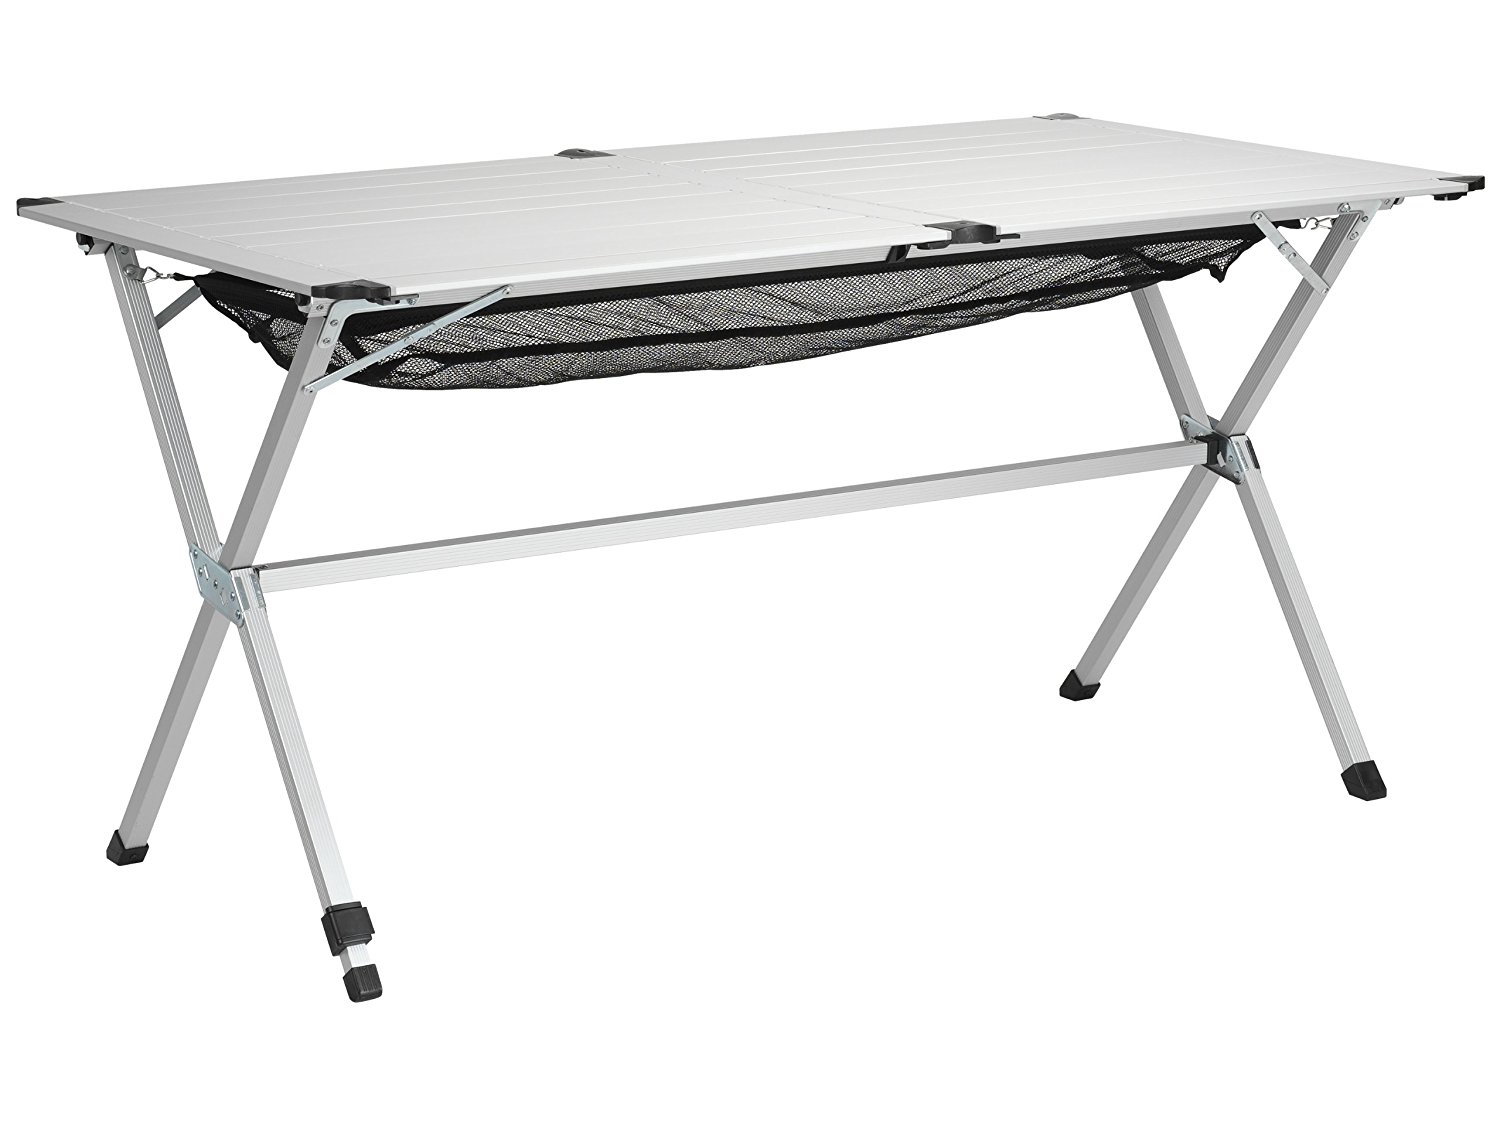 Table de camping bon prix